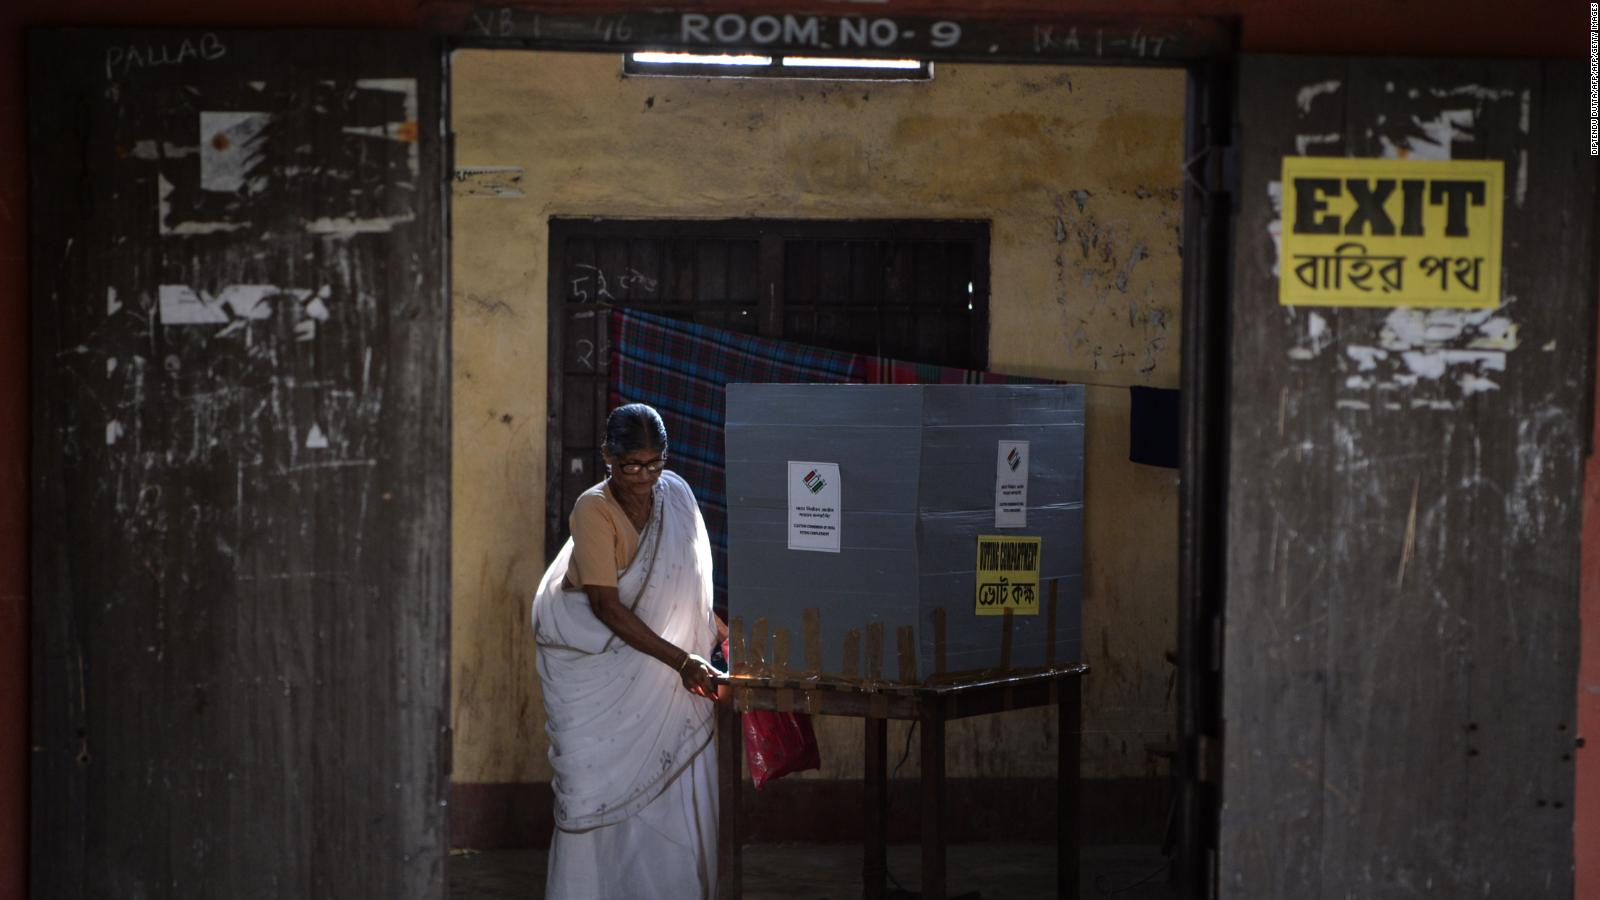 A woman casts her vote in West Bengal, among the first ballots cast in India's 2019 general election.